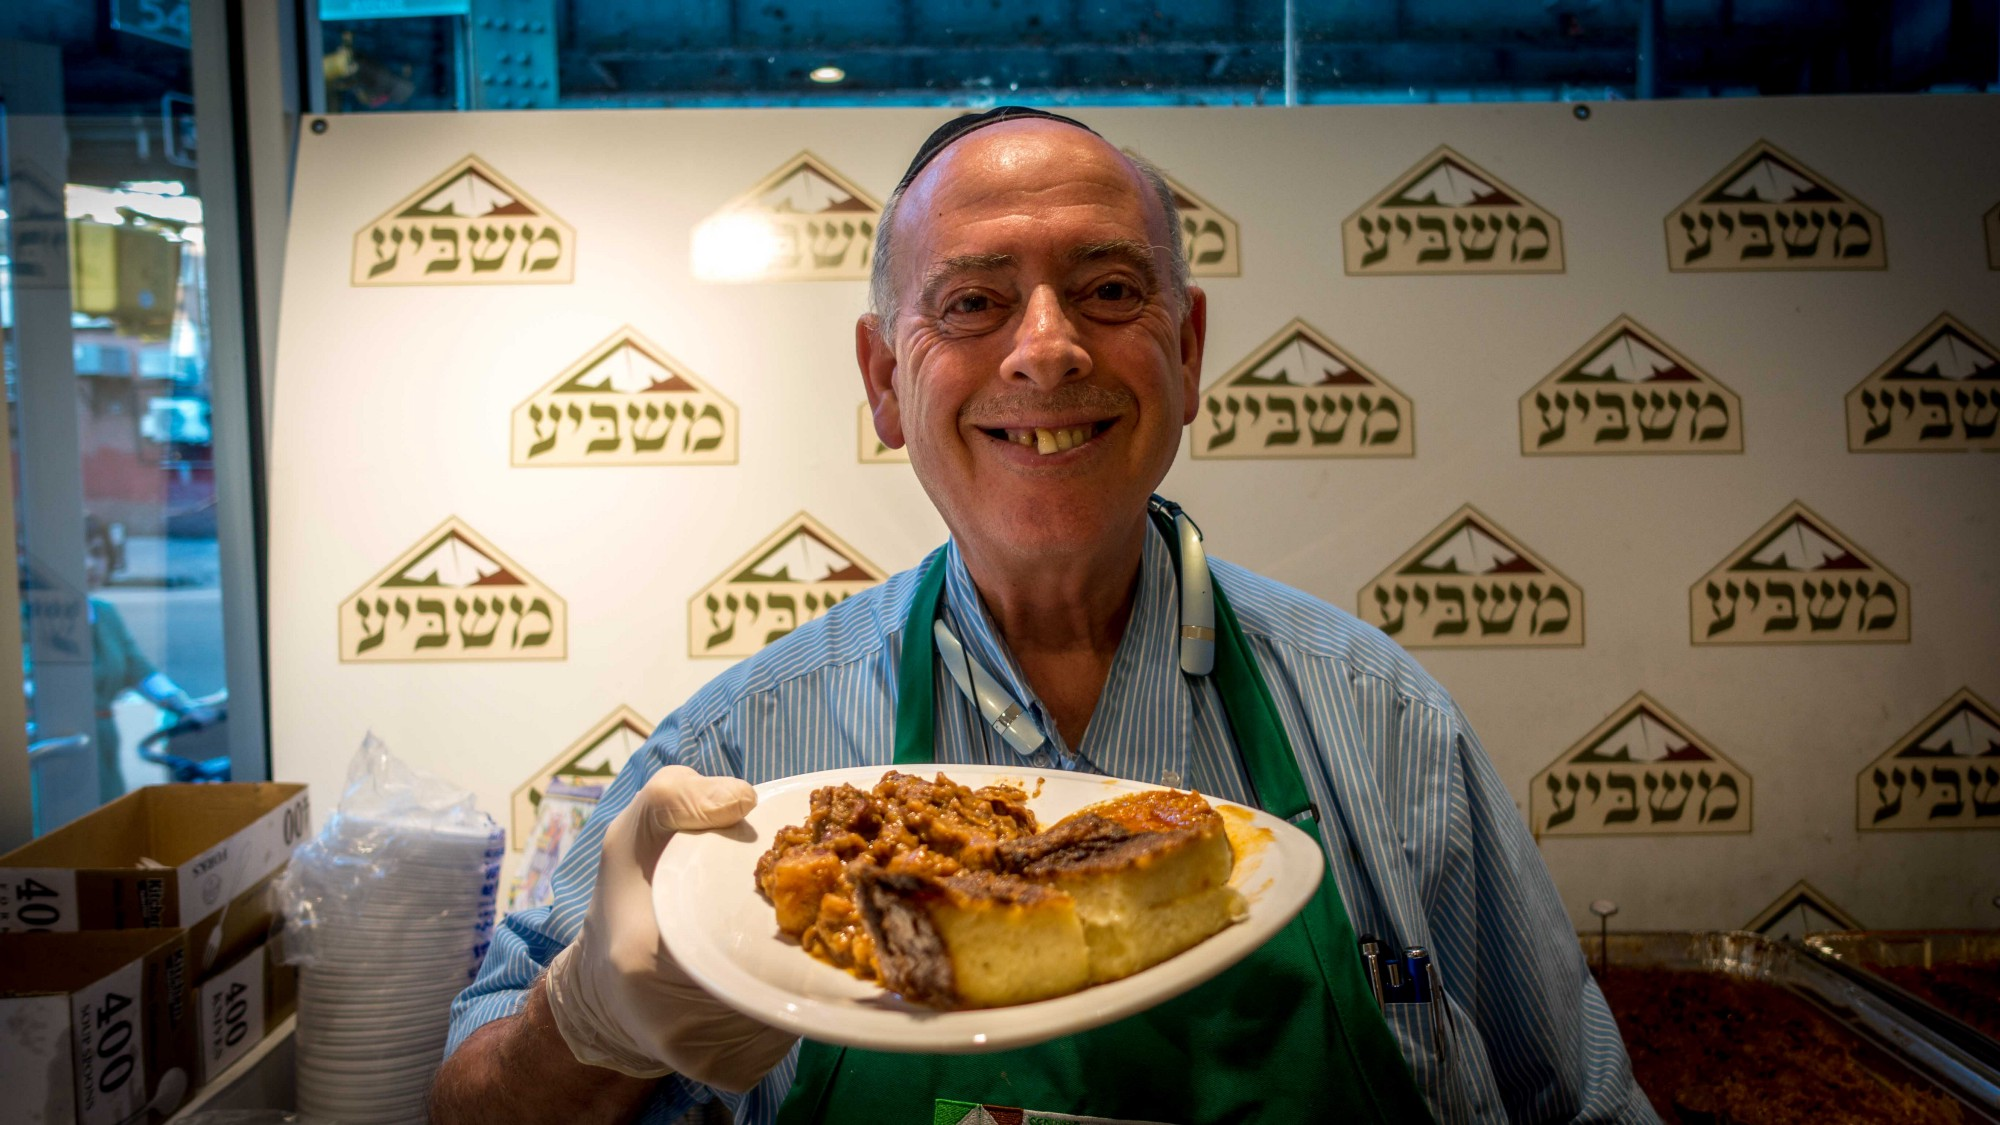 A.B. Grinspan serves a kosher meal at Masbia's Brooklyn soup kitchen. (Erin Riglin/Columbia News)